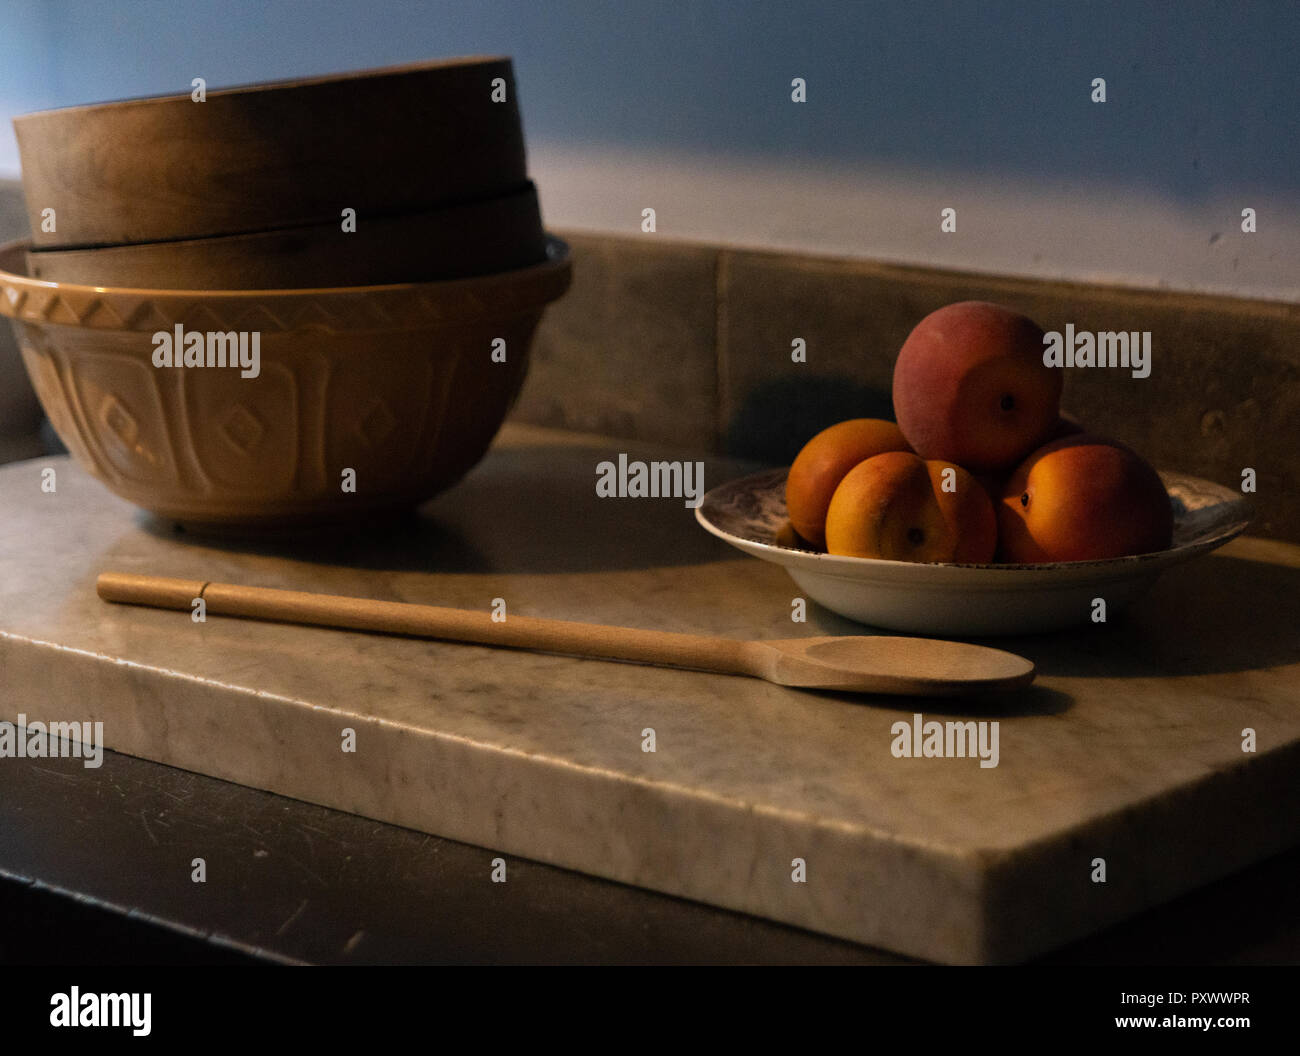 Arrangement of mock peaches in a round white bowl together with a small stack of mixing bowls and a wooden spoon on a marble work bench. - Stock Image